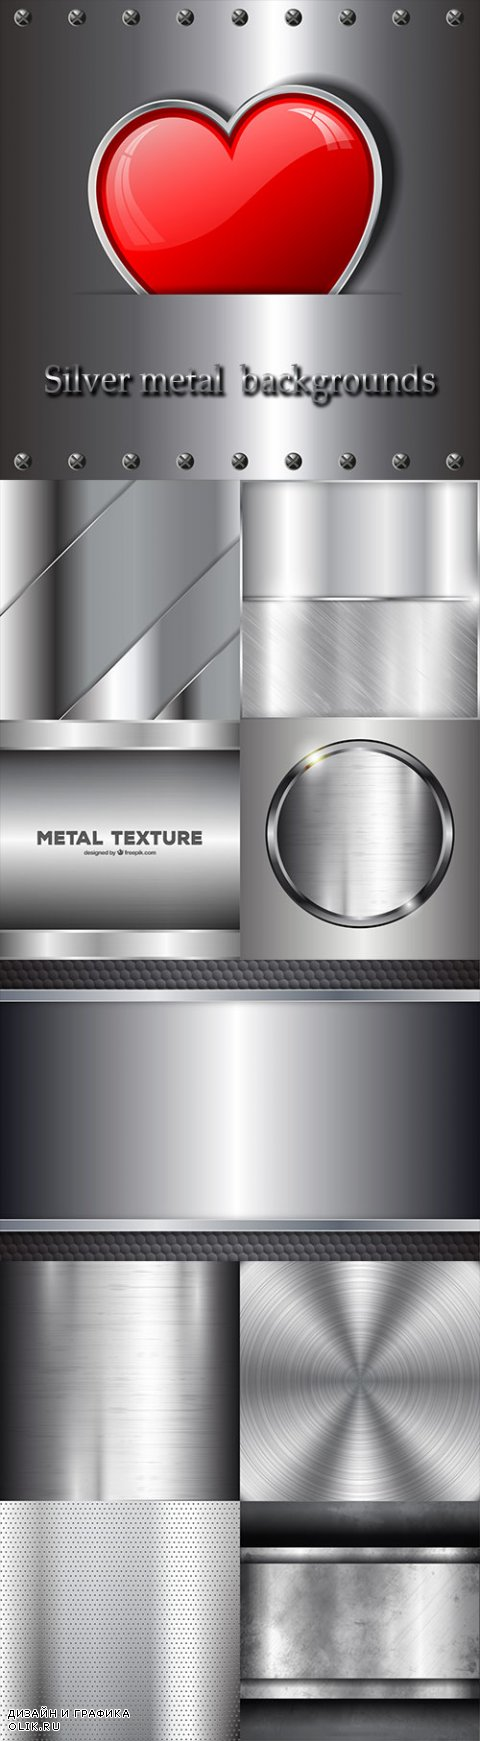 Silver metal  backgrounds